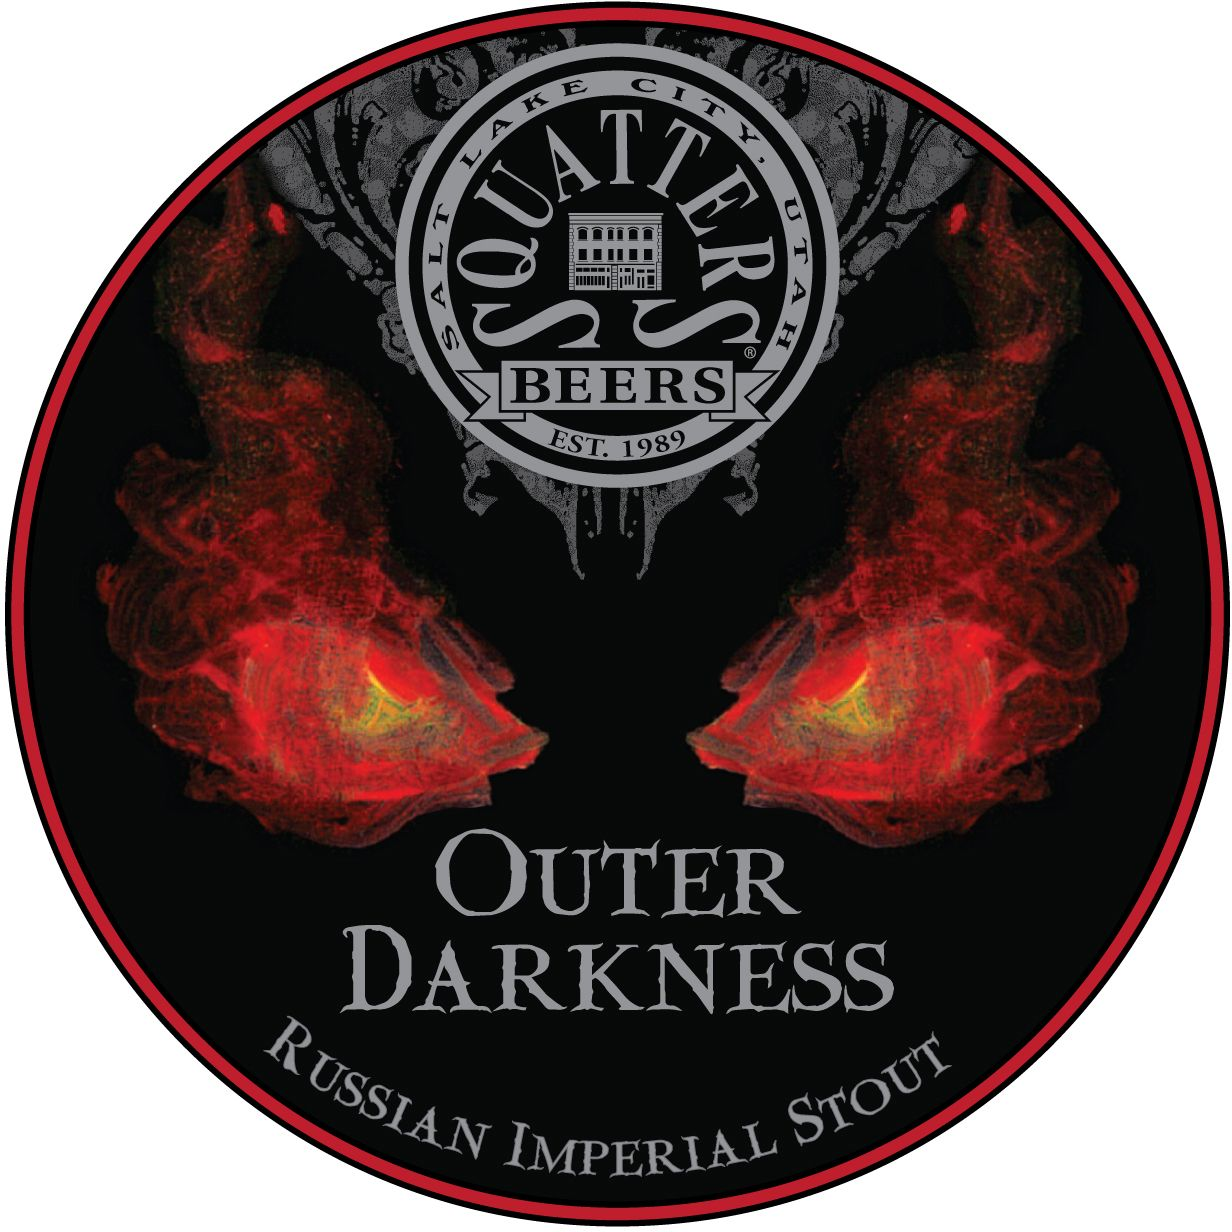 Outer Darkness Welcome To The Biggest Beer Squatters Pub Brewery Has Ever Made A Russian Imperial Stout Is One Of The Most Flavored Beer Beer Licorice Root